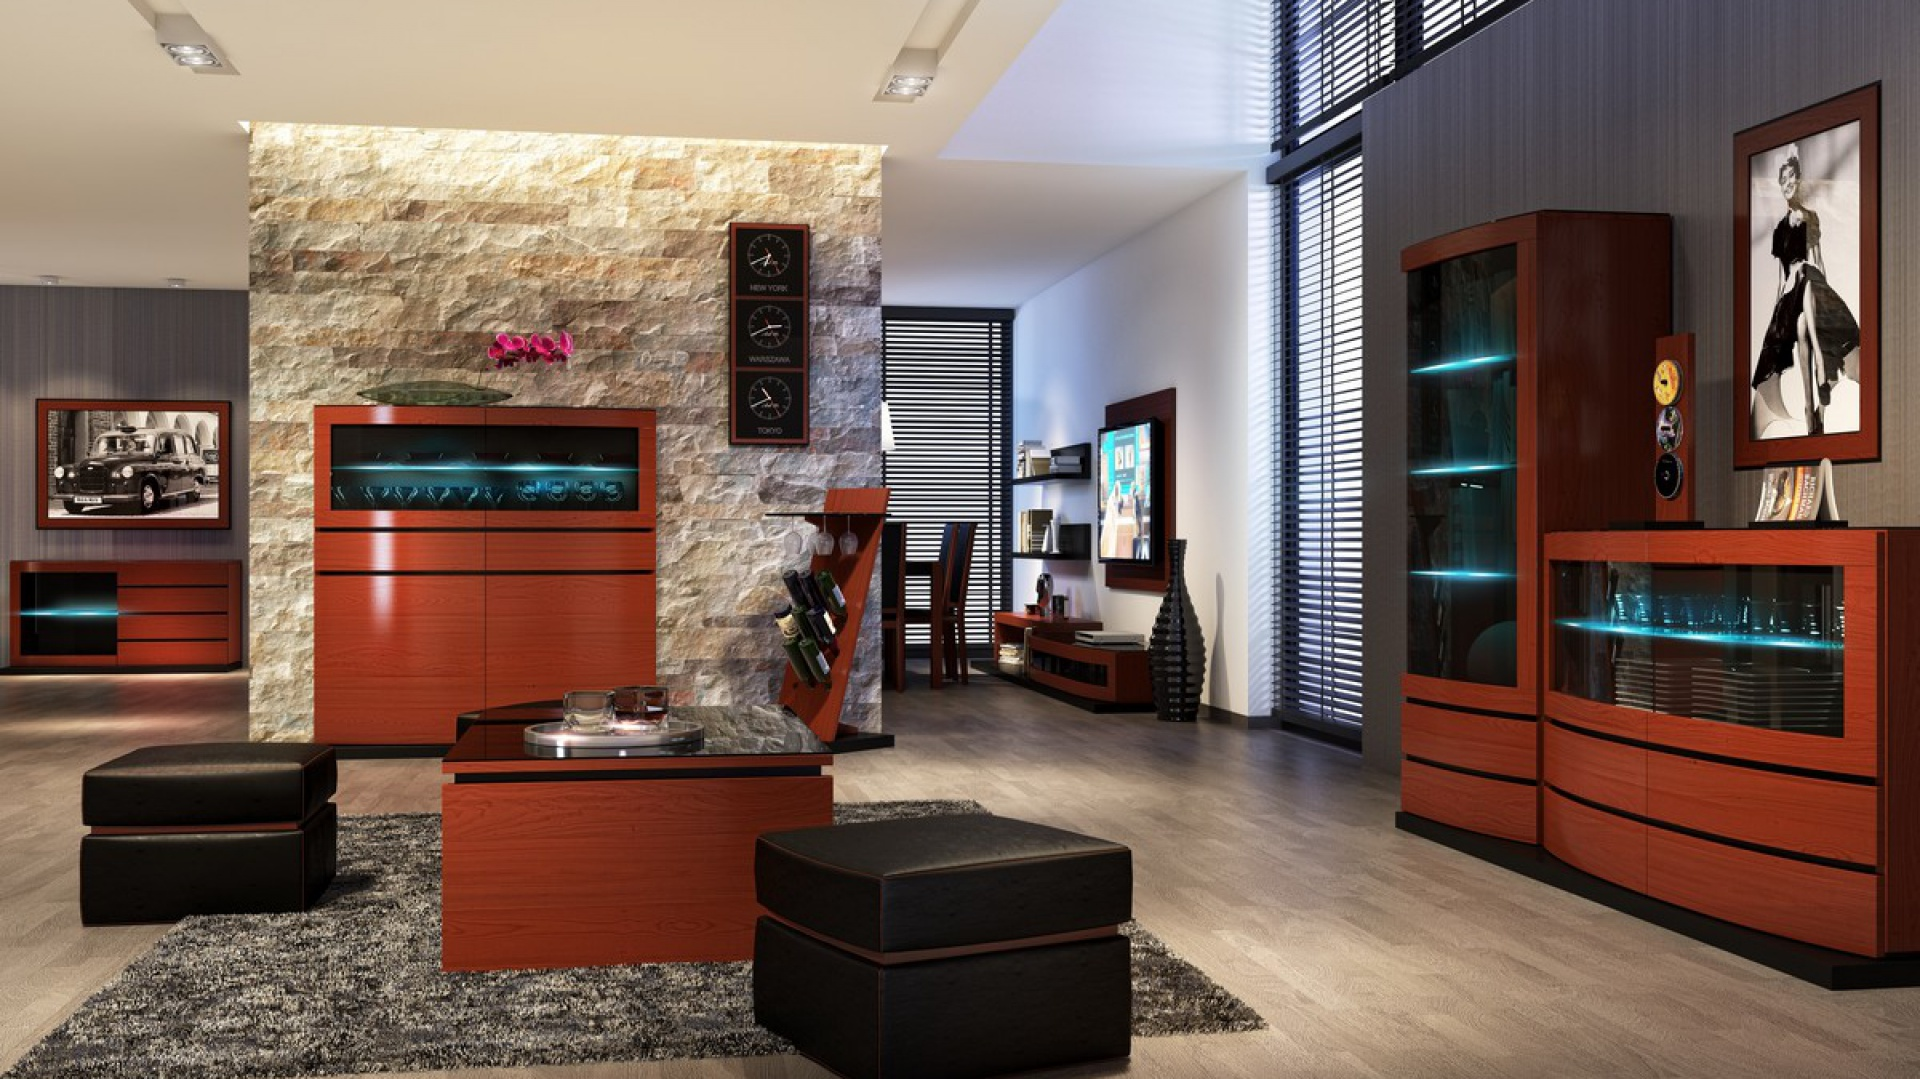 Salon, meble ArtModulo. Fot. Mebin